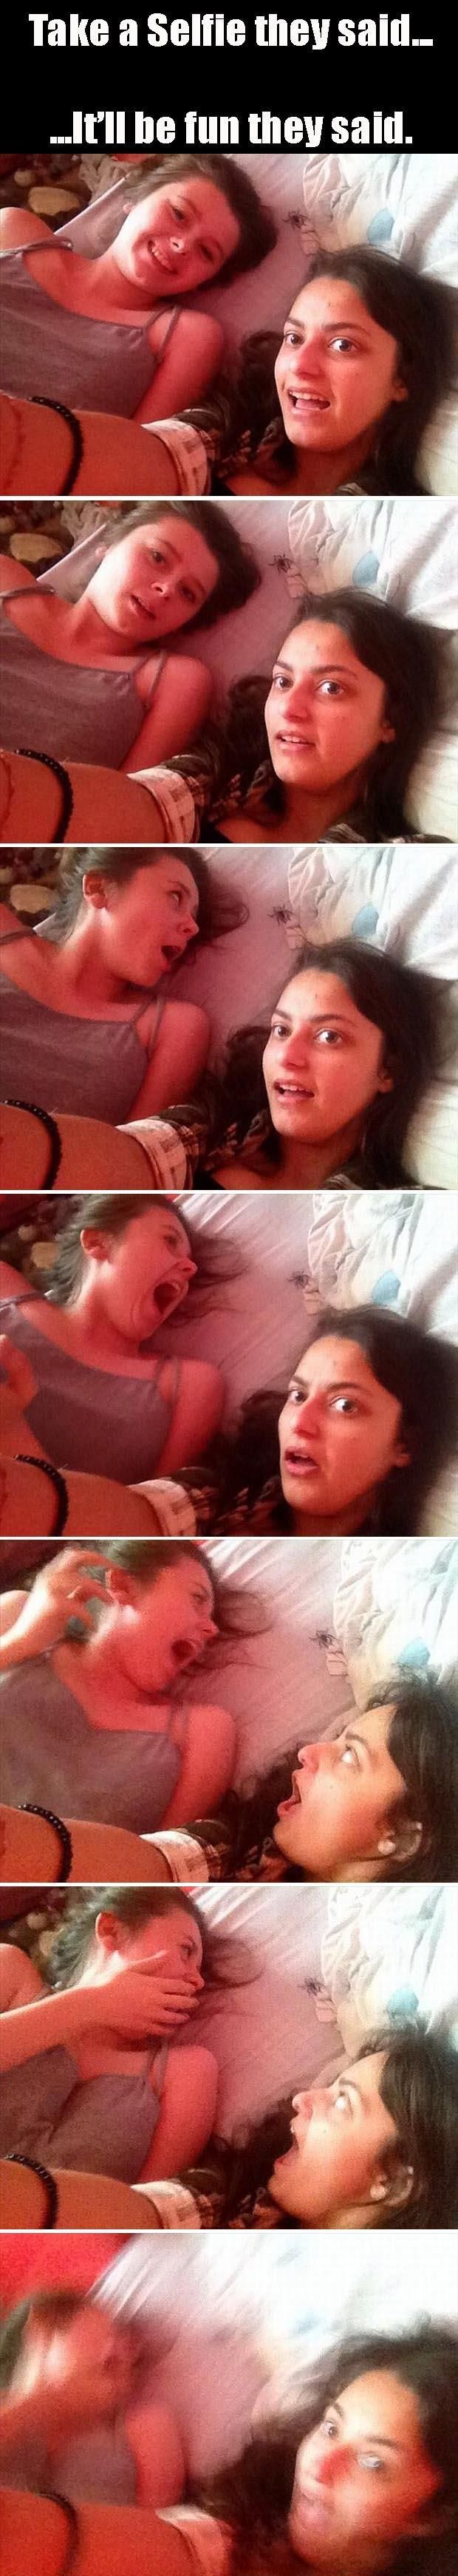 Dump A Day Funny Pictures Of The Day - 92 Pics. Selfie gone wrong...photobombed by the spider...Lolololol!